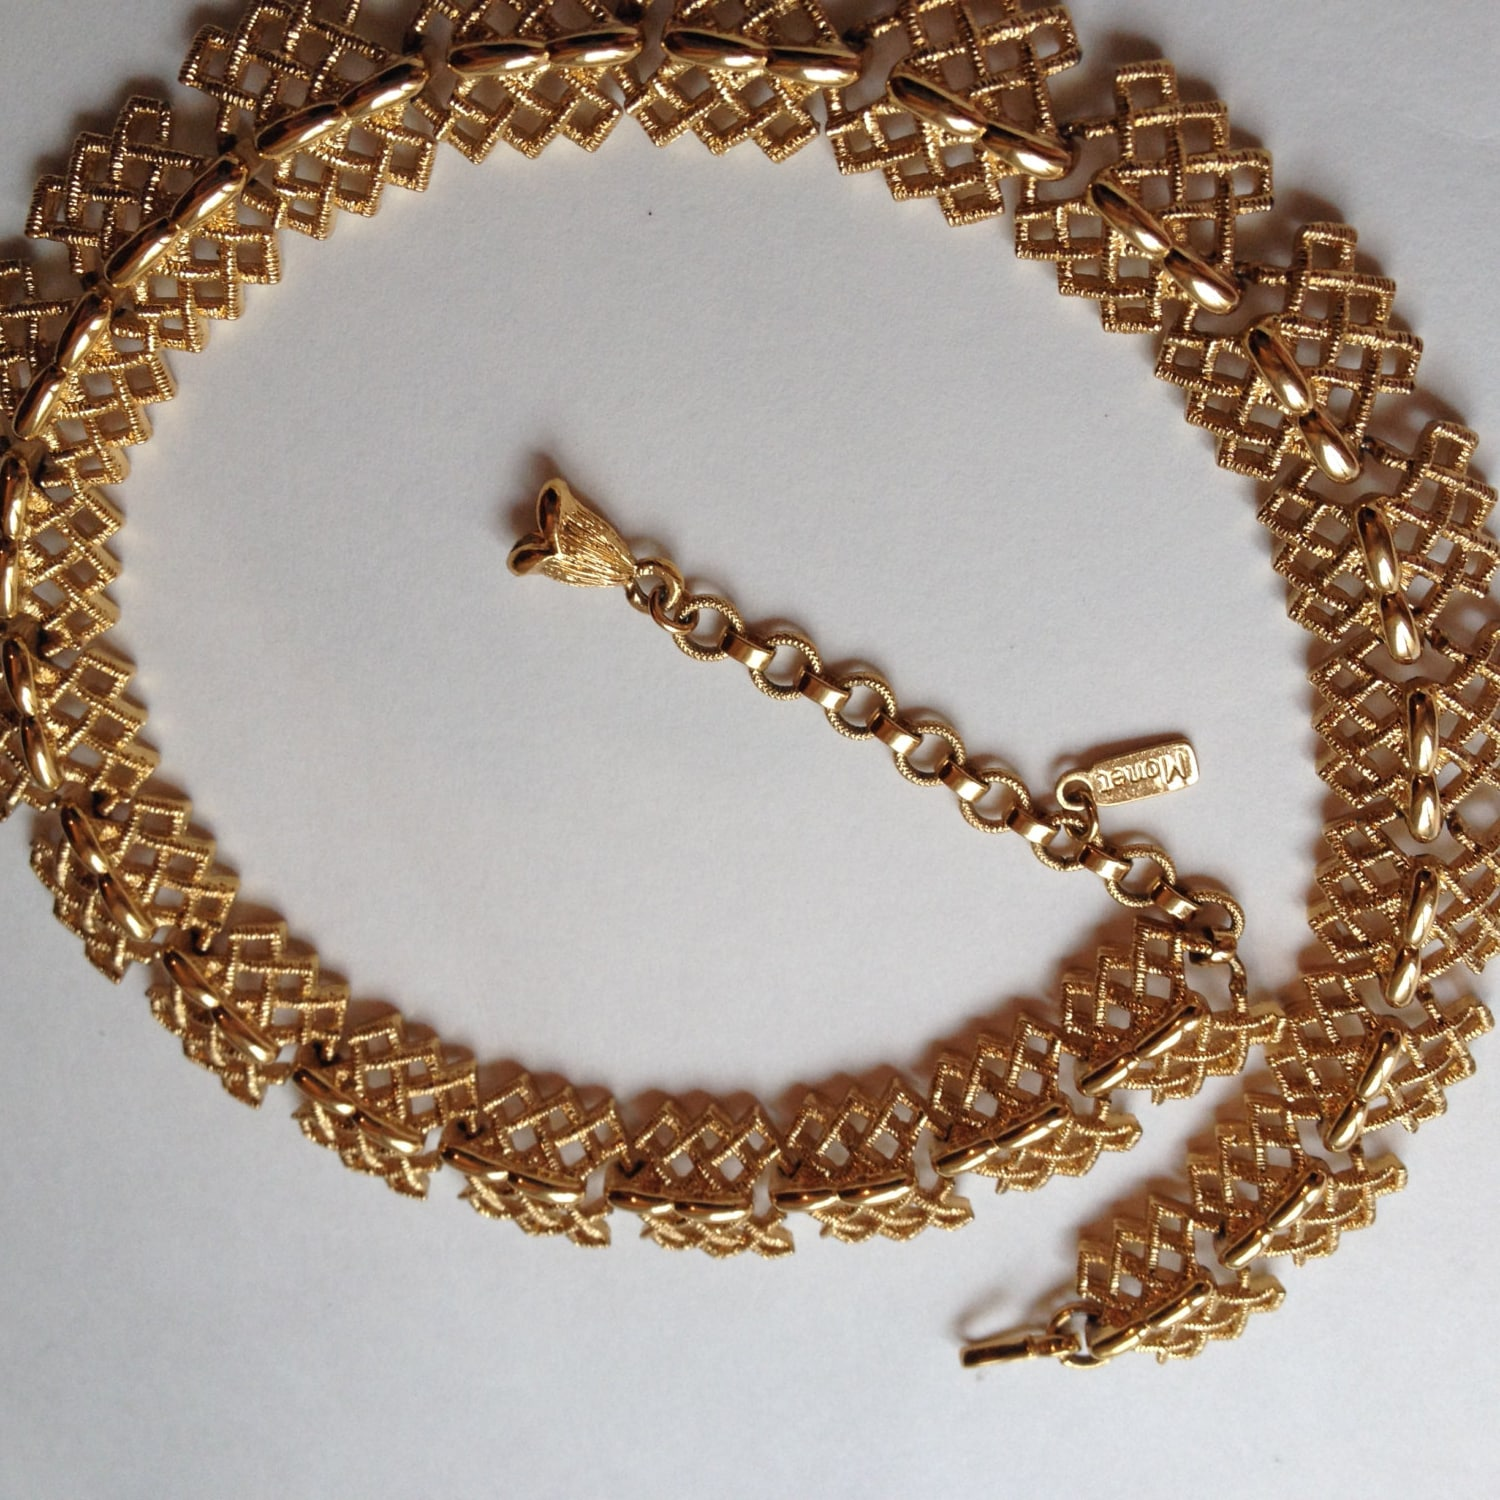 vintage monet necklace gold tone signed textured bold gold